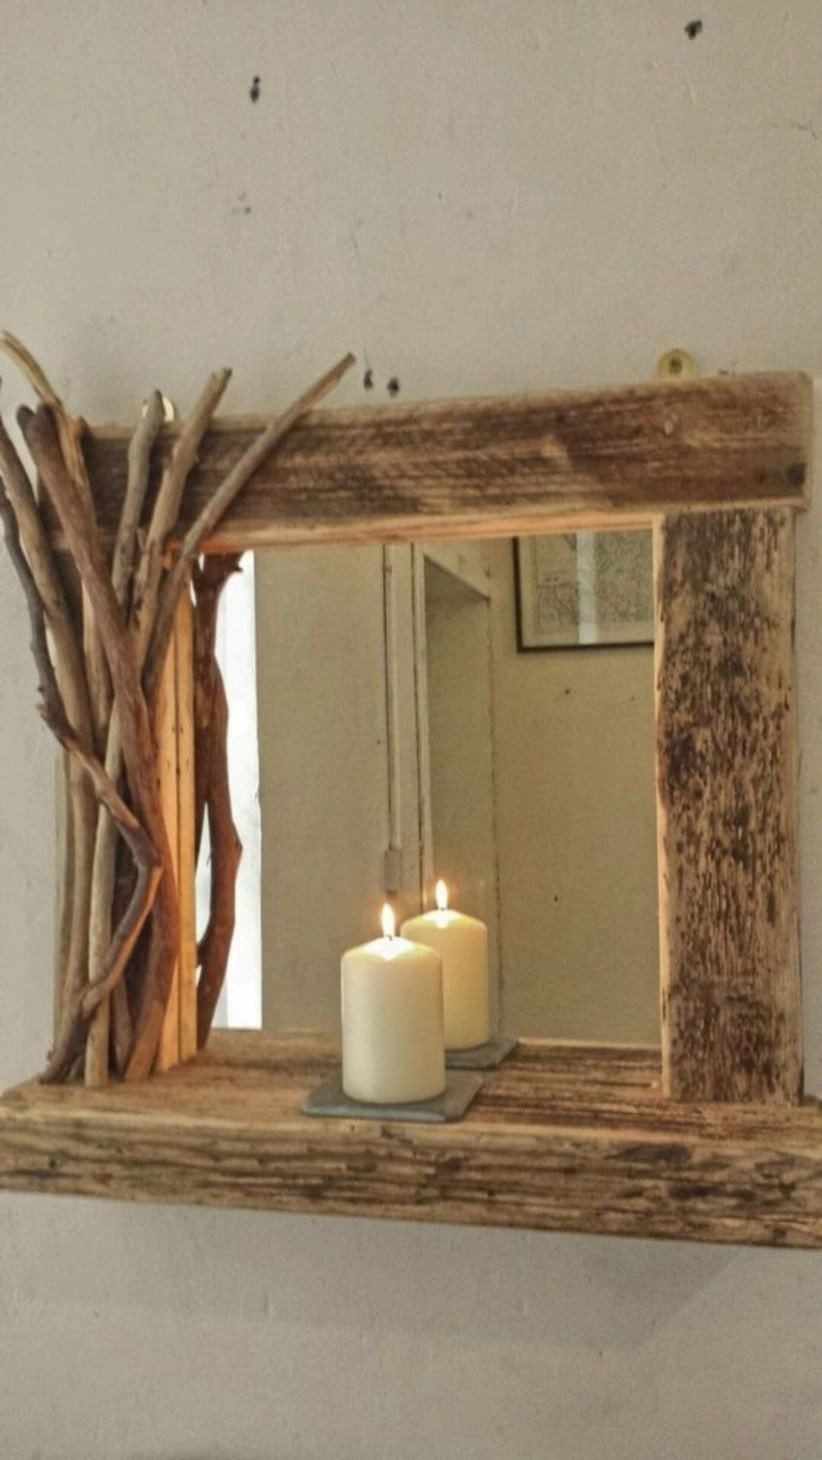 Diy rustic reclaimed driftwood farmhouse mirror with shelf and decorated frame